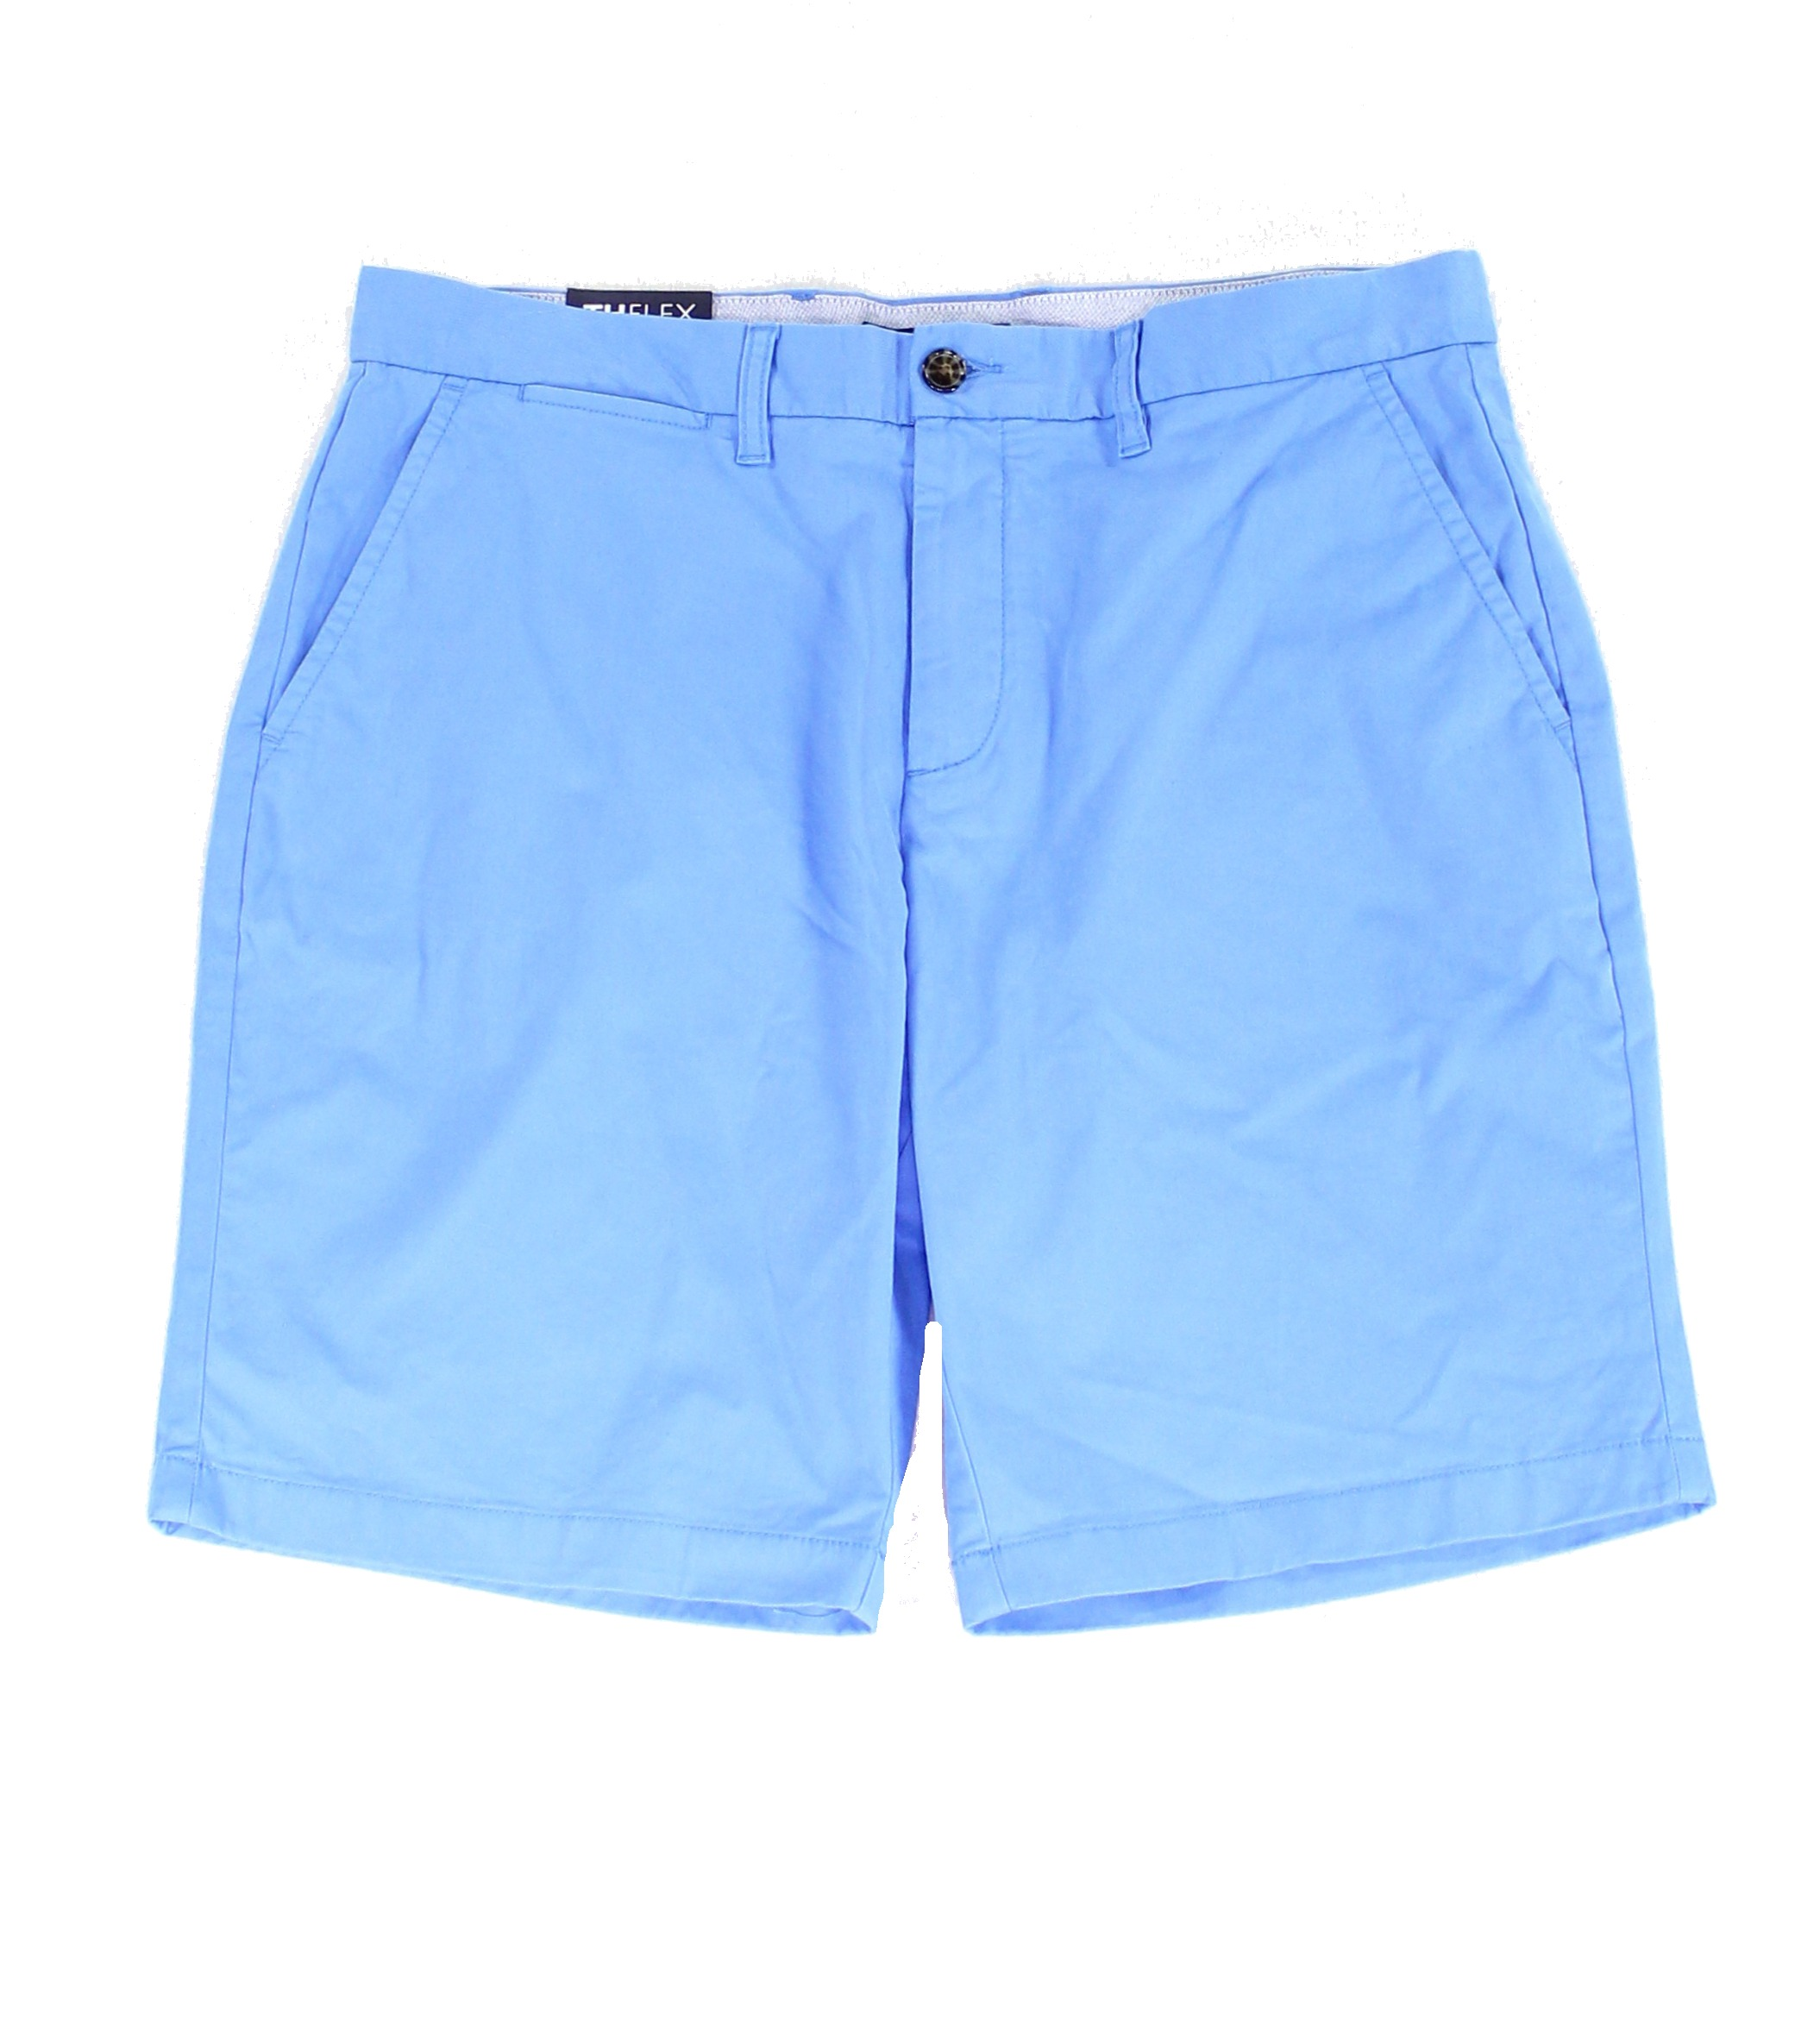 New-Tommy-Hilfiger-Blue-Mens-Size-32-Flat-Front-Khakis-Chinos-Shorts-49-332